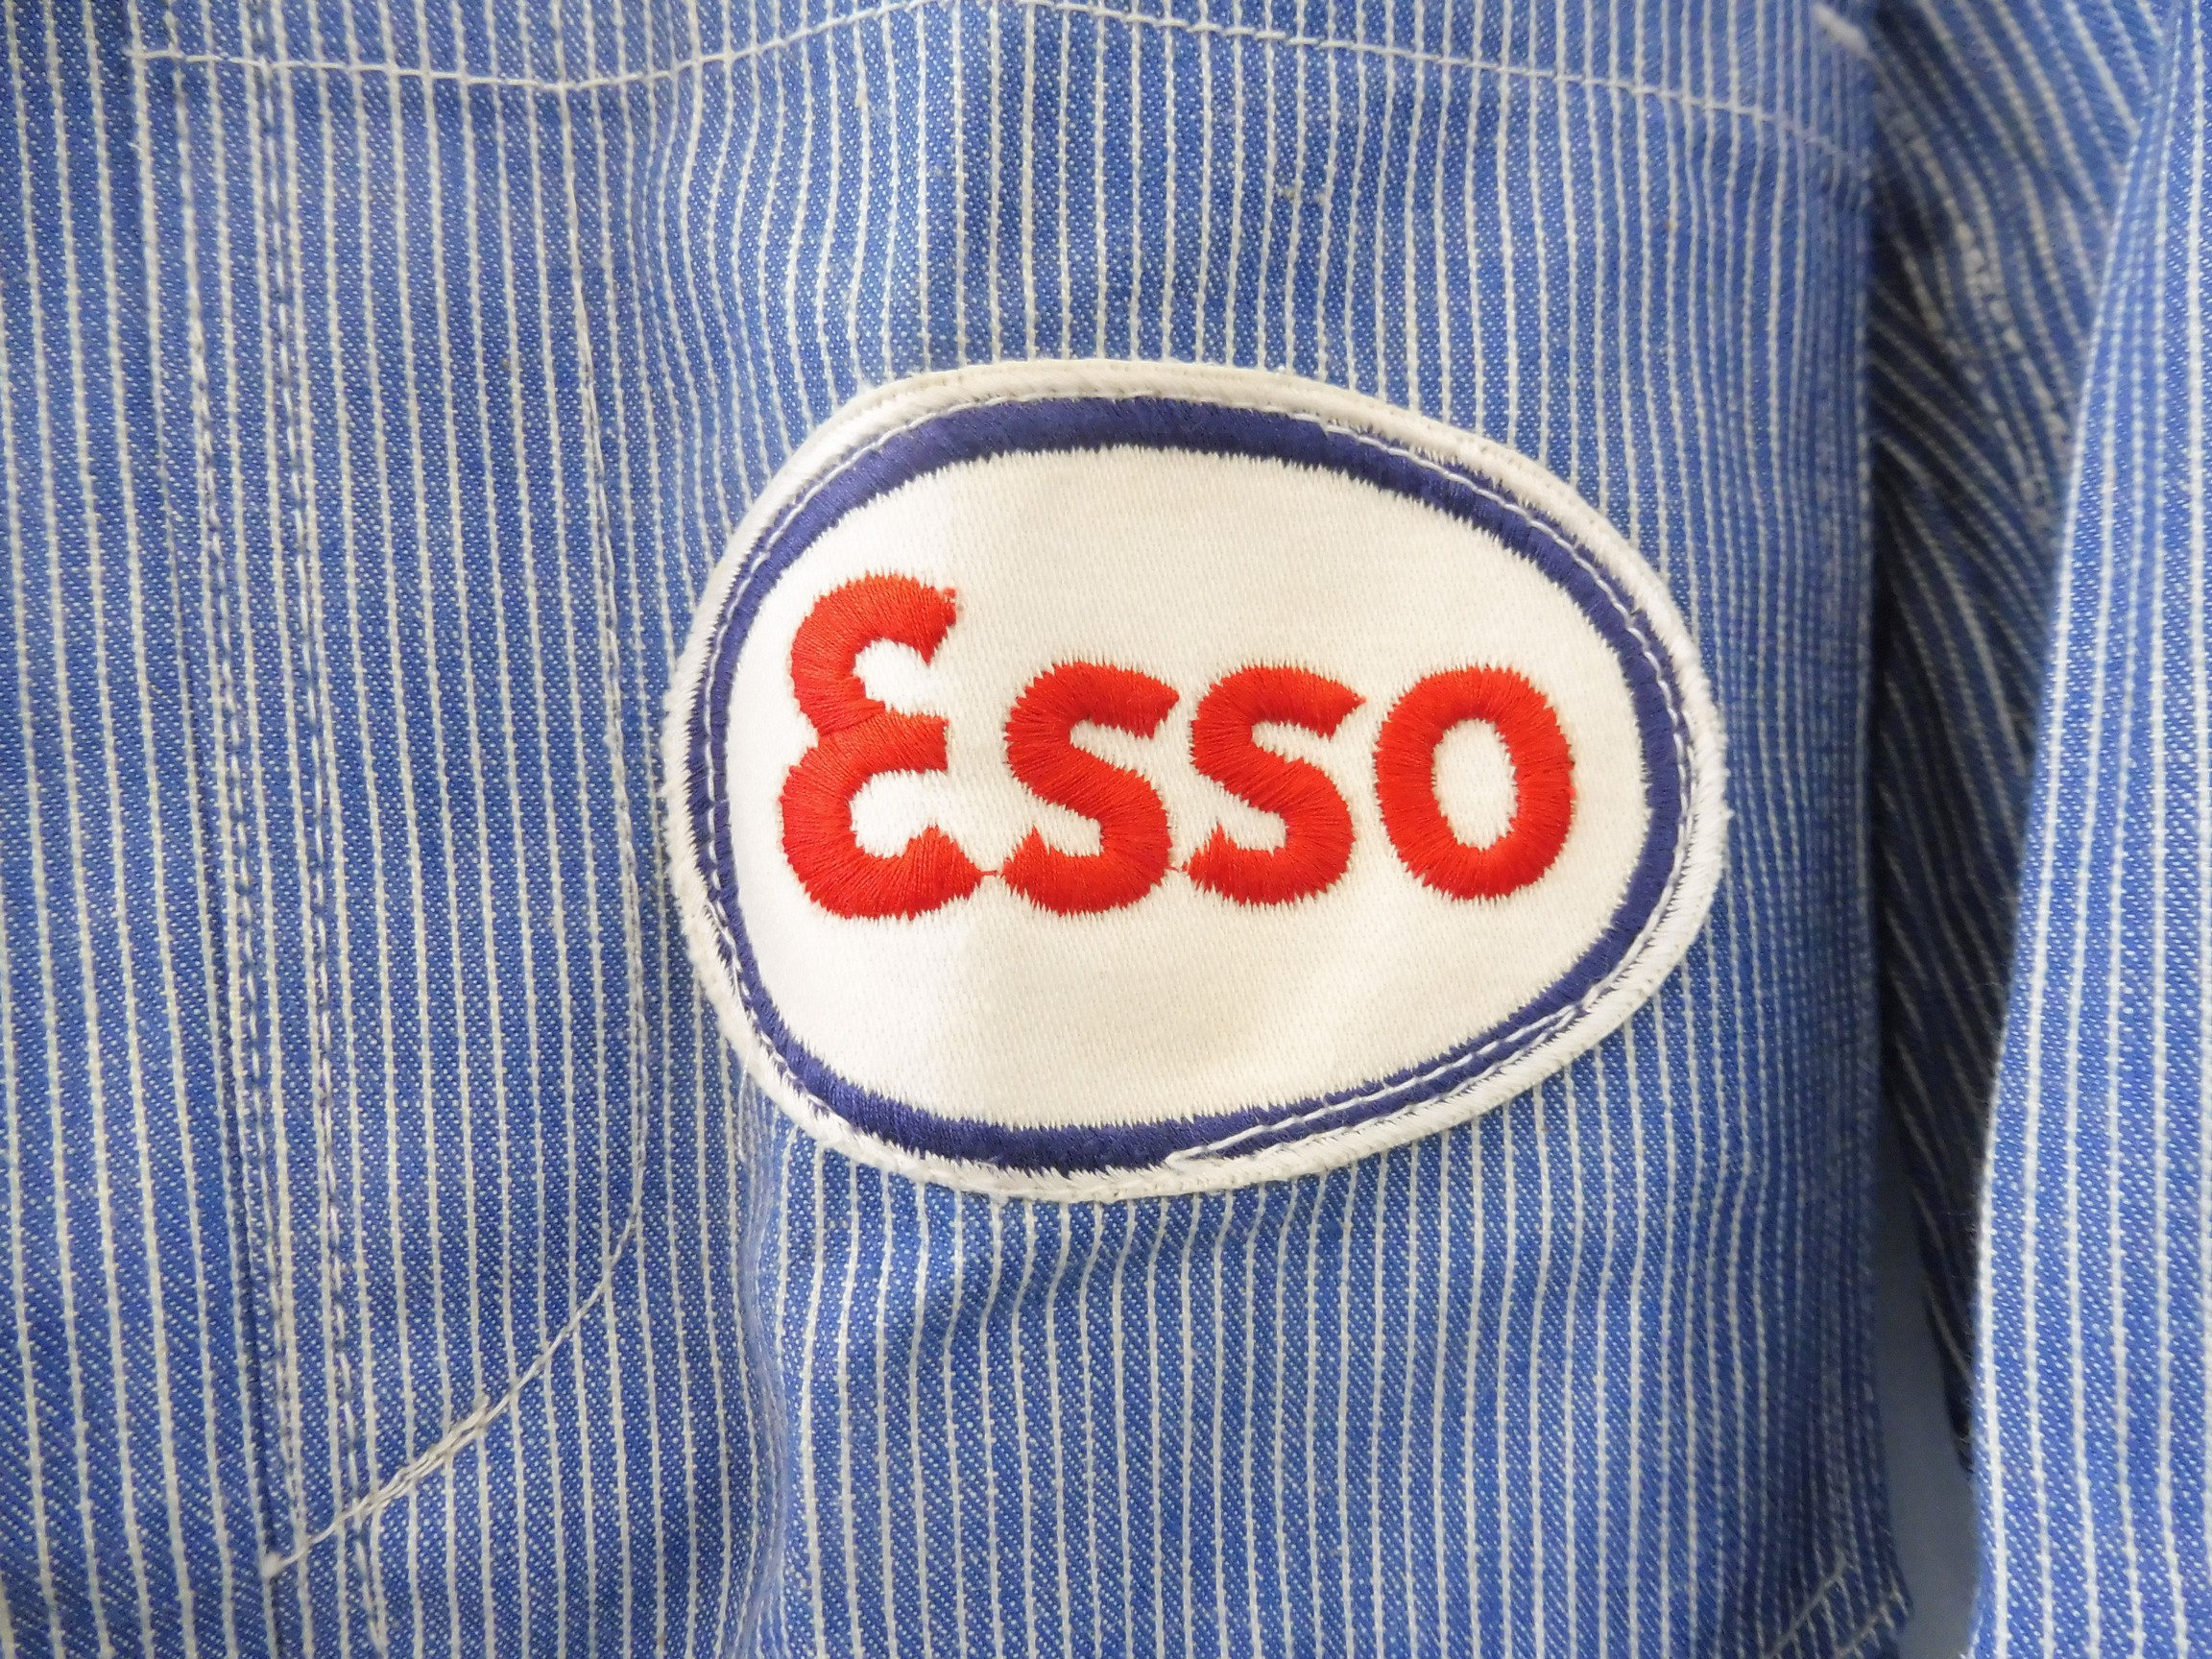 A new old stock overcoat with Esso branding, manufactured by Beacon Reg'd, size 38 (slightly - Image 2 of 6